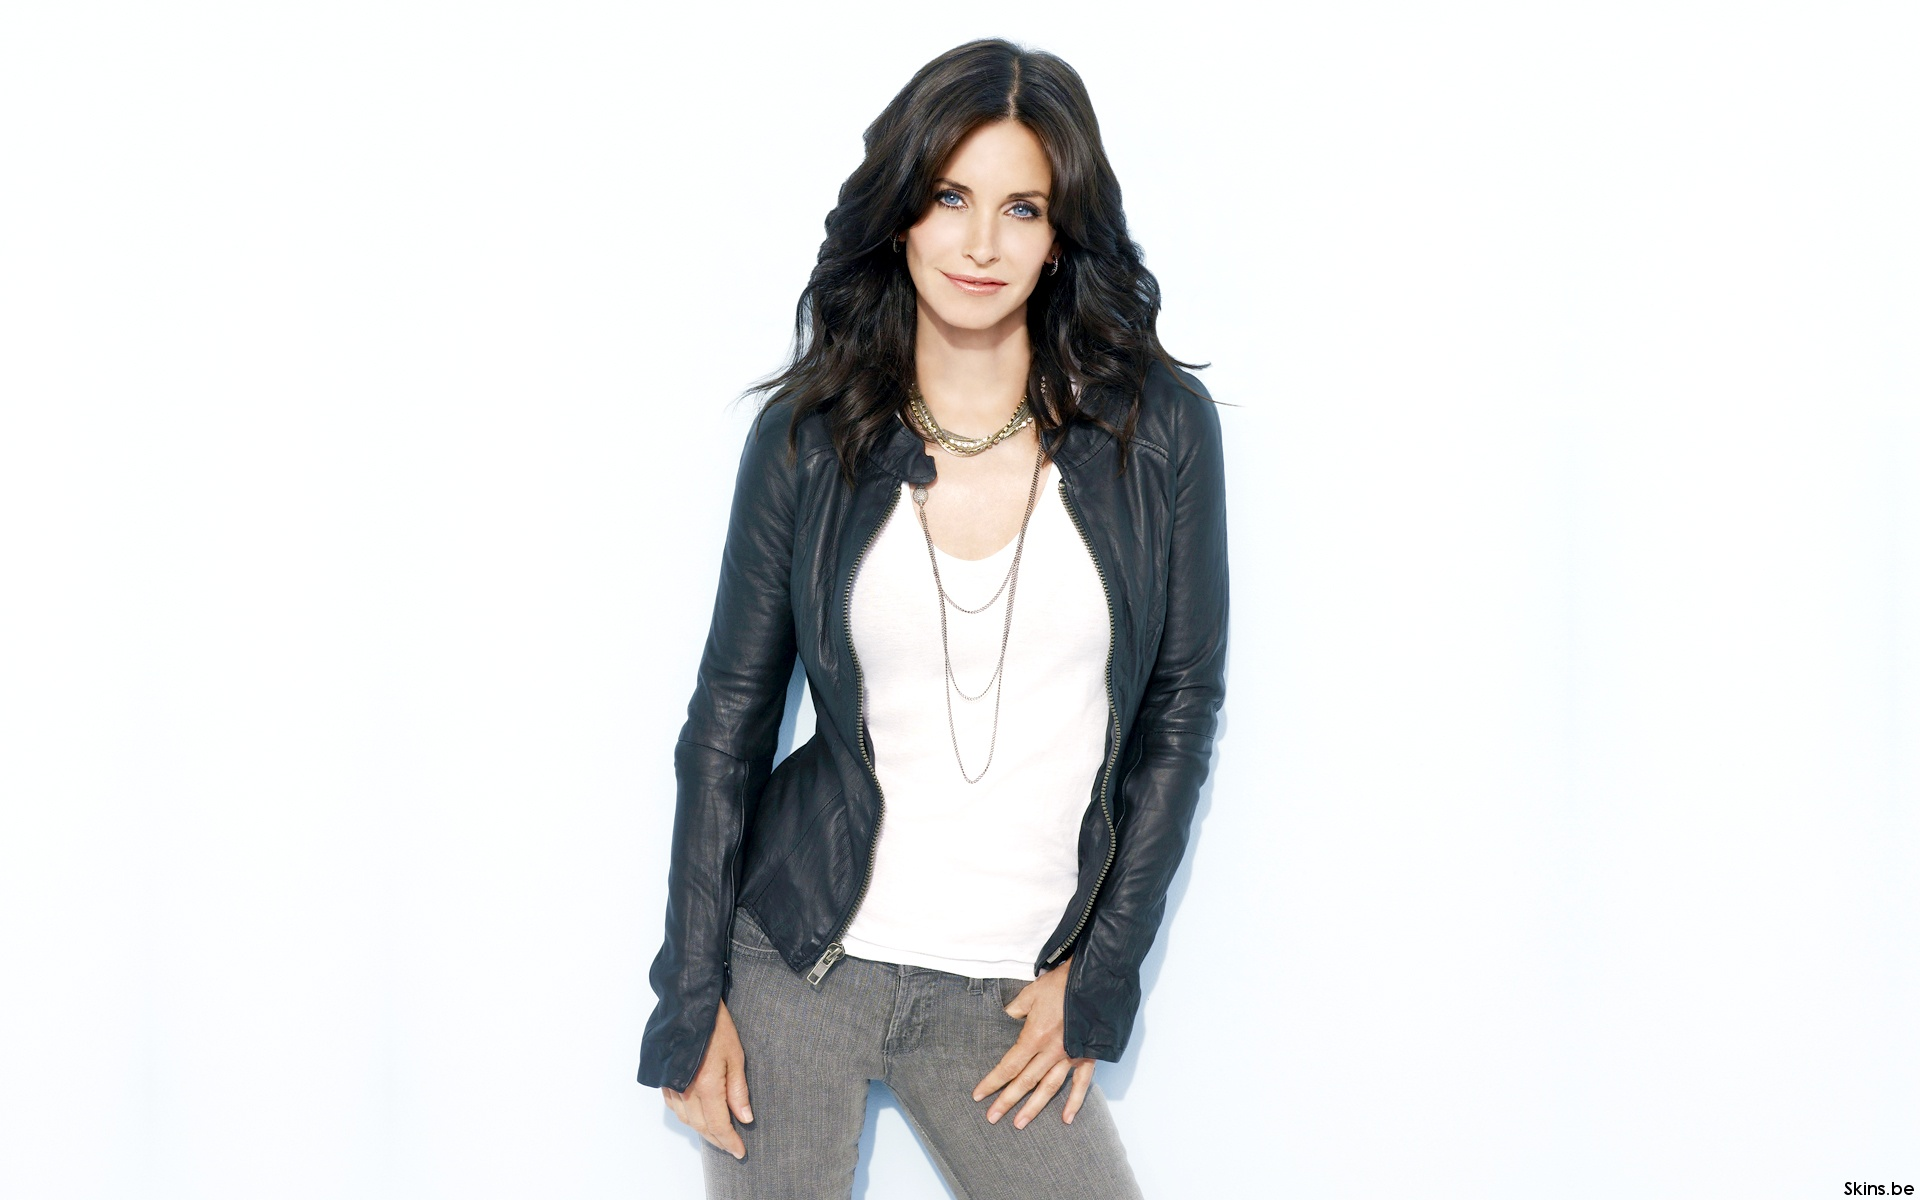 1920x1200 - Courtney Cox Wallpapers 16